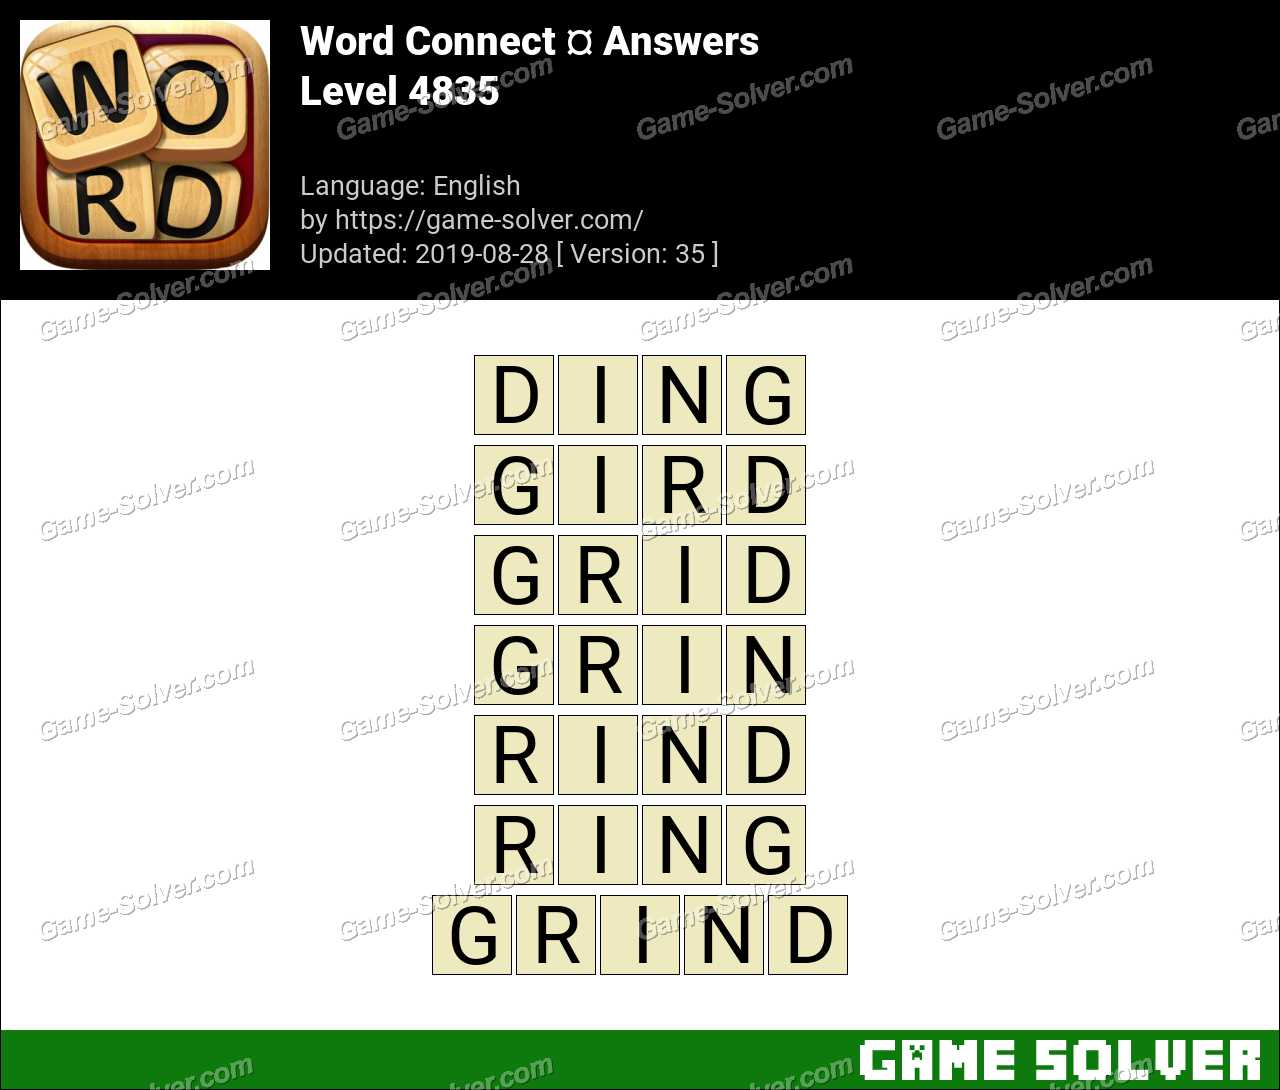 Word Connect Level 4835 Answers